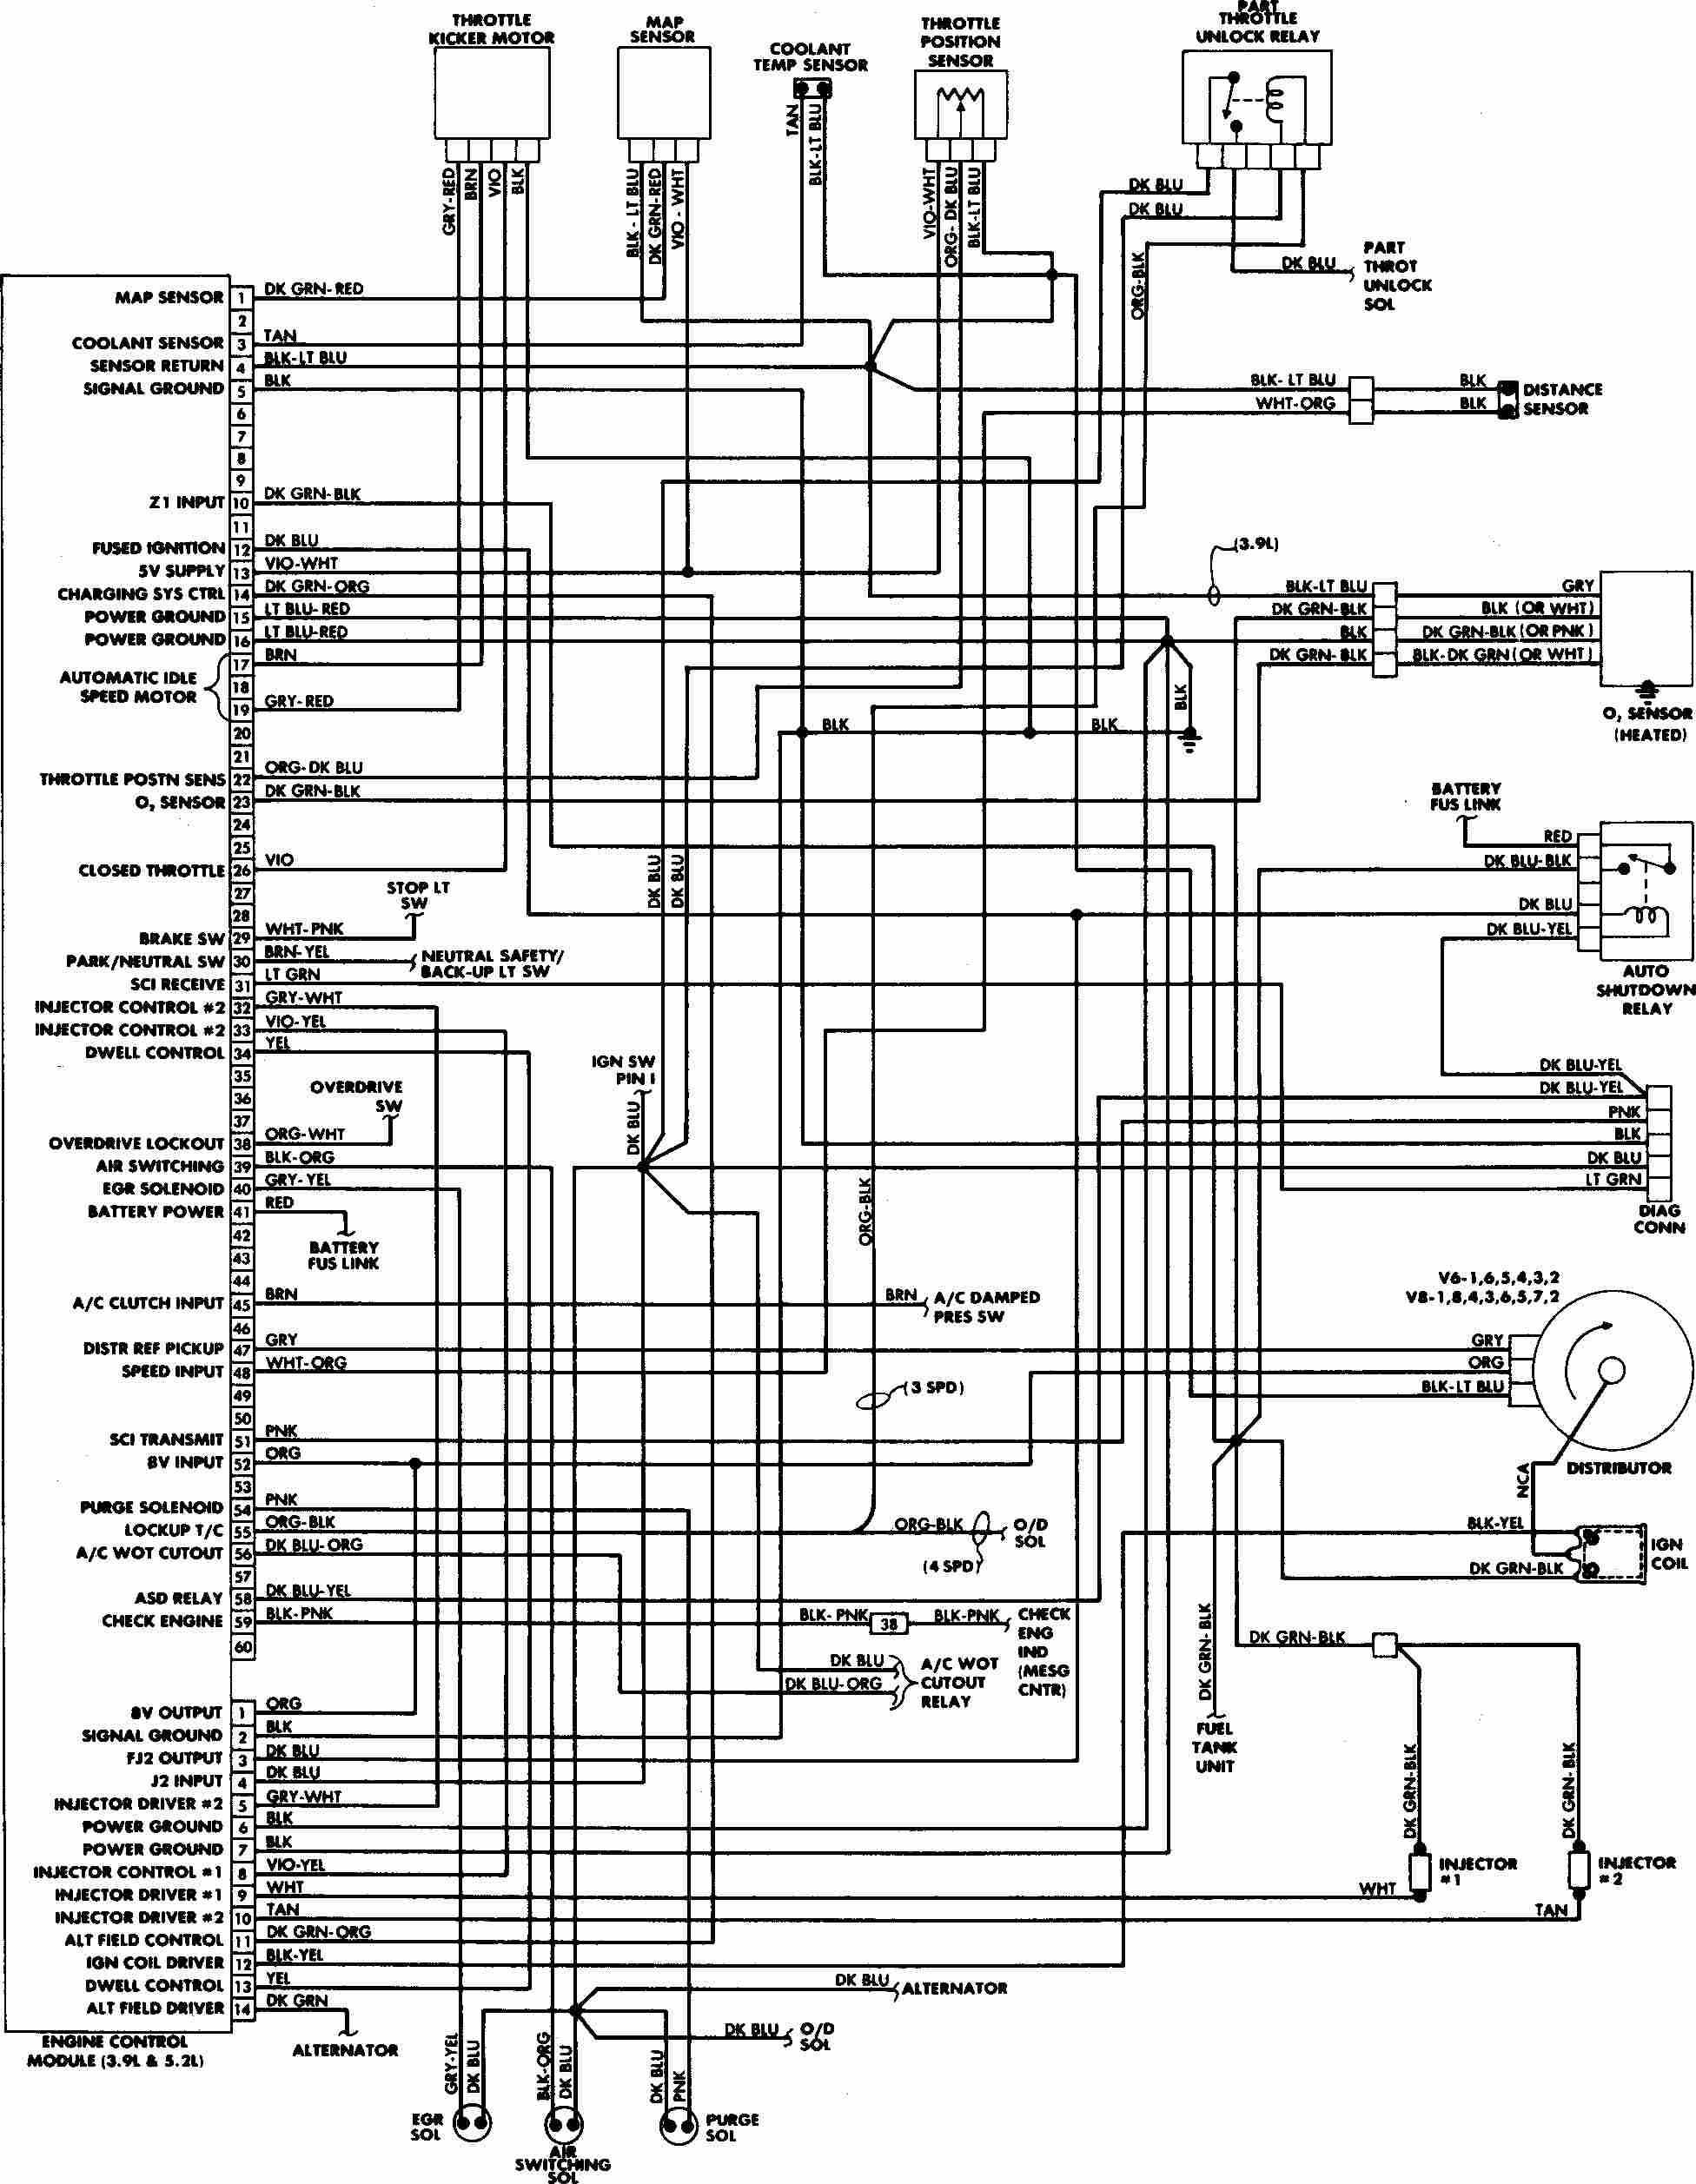 2000 dodge durango map wiring diagram - data wiring diagram left-pipe-a -  left-pipe-a.vivarelliauto.it  vivarelliauto.it